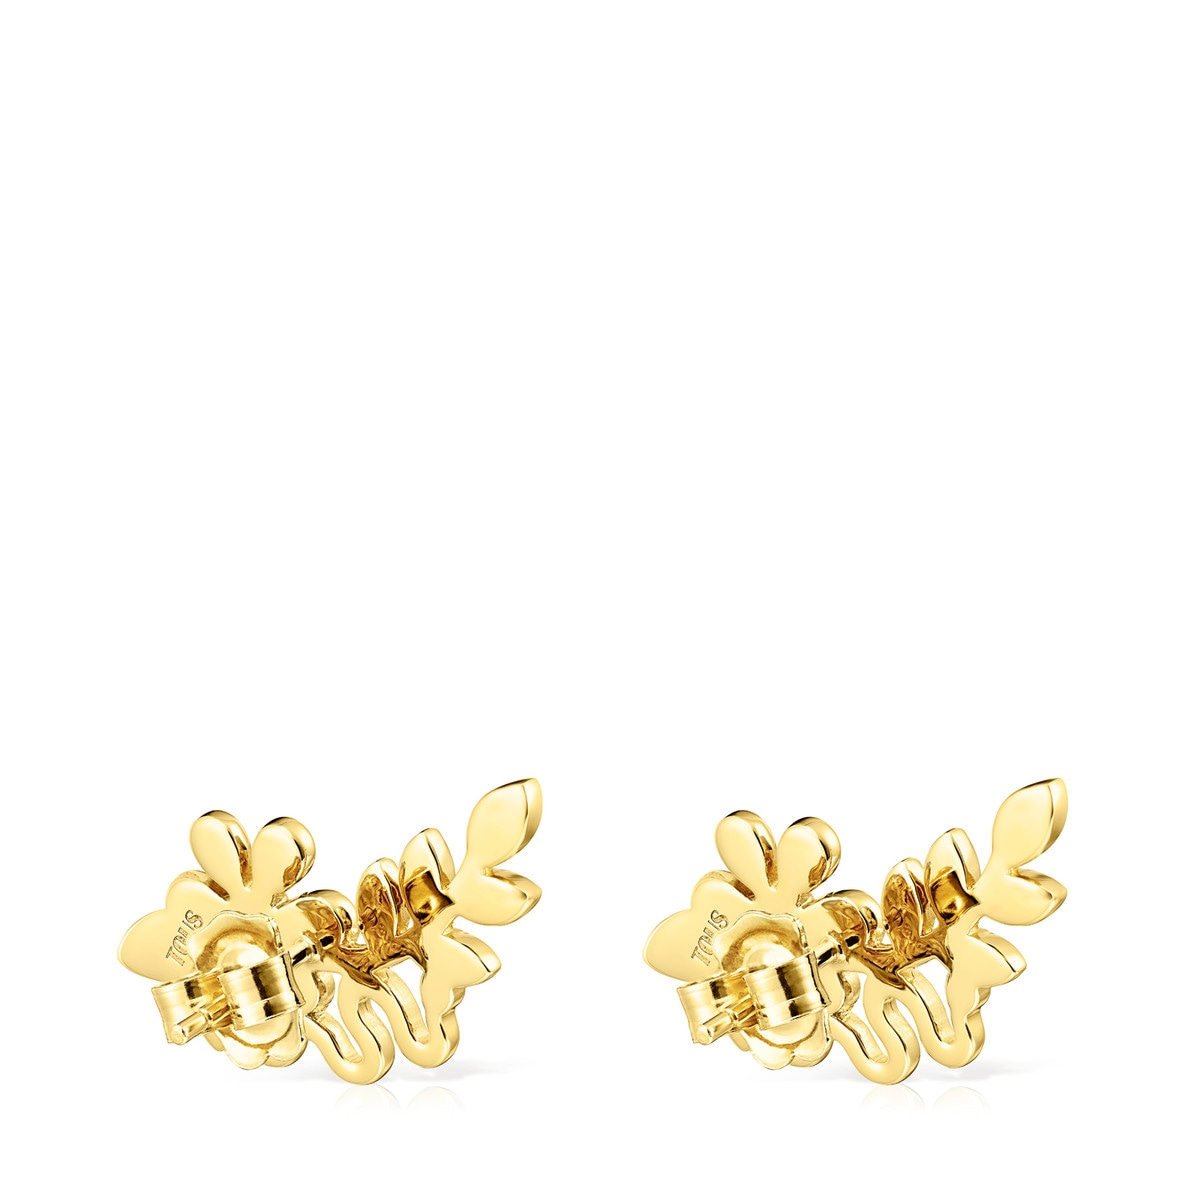 f72c49a63542a Gold Vermeil Real Mix Leaf Earrings